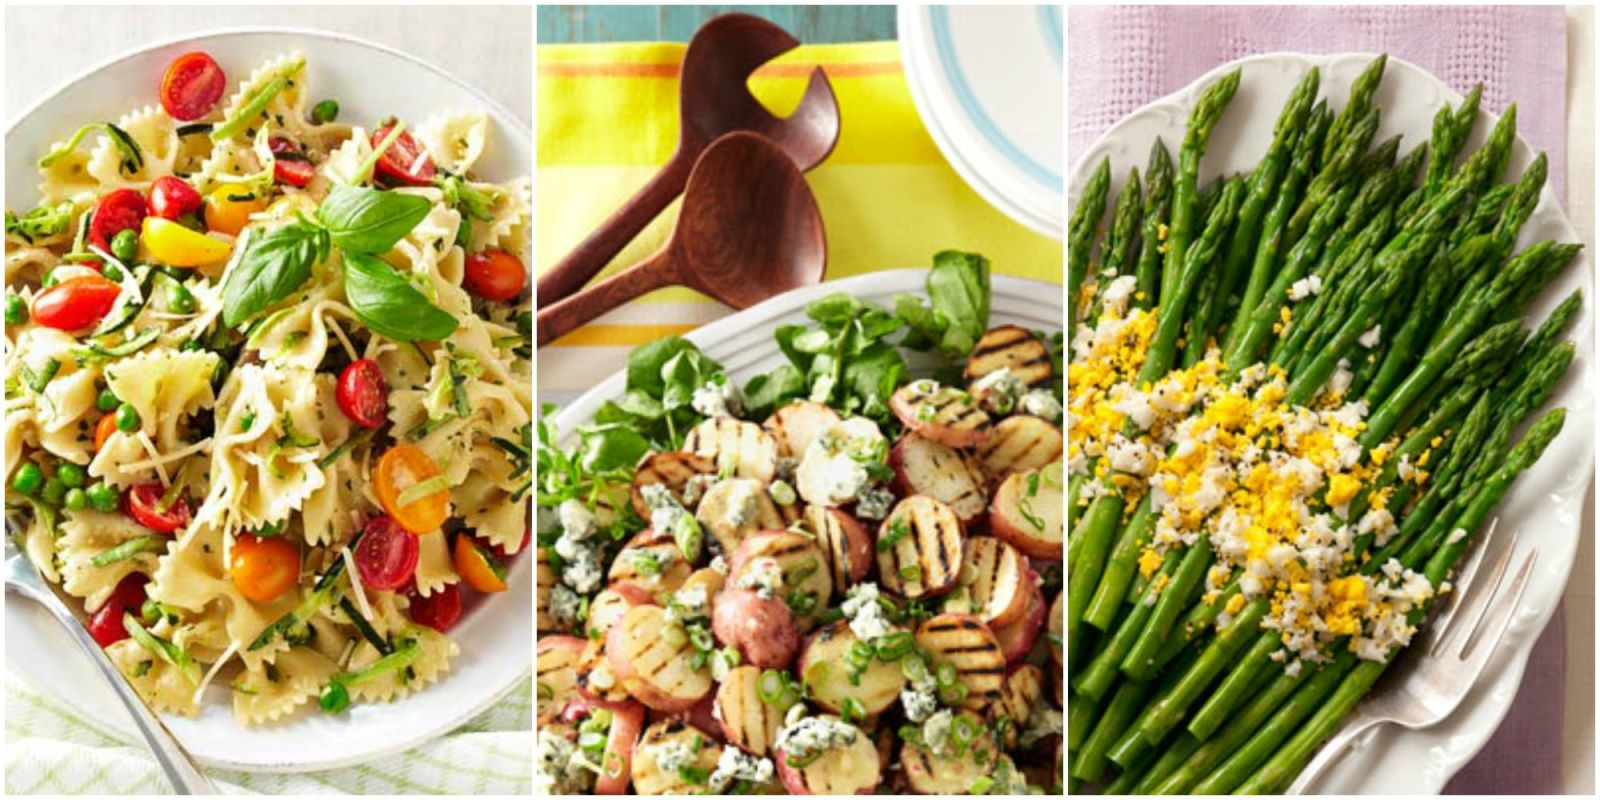 18 memorial day side dishes best sides for memorial day barbecues